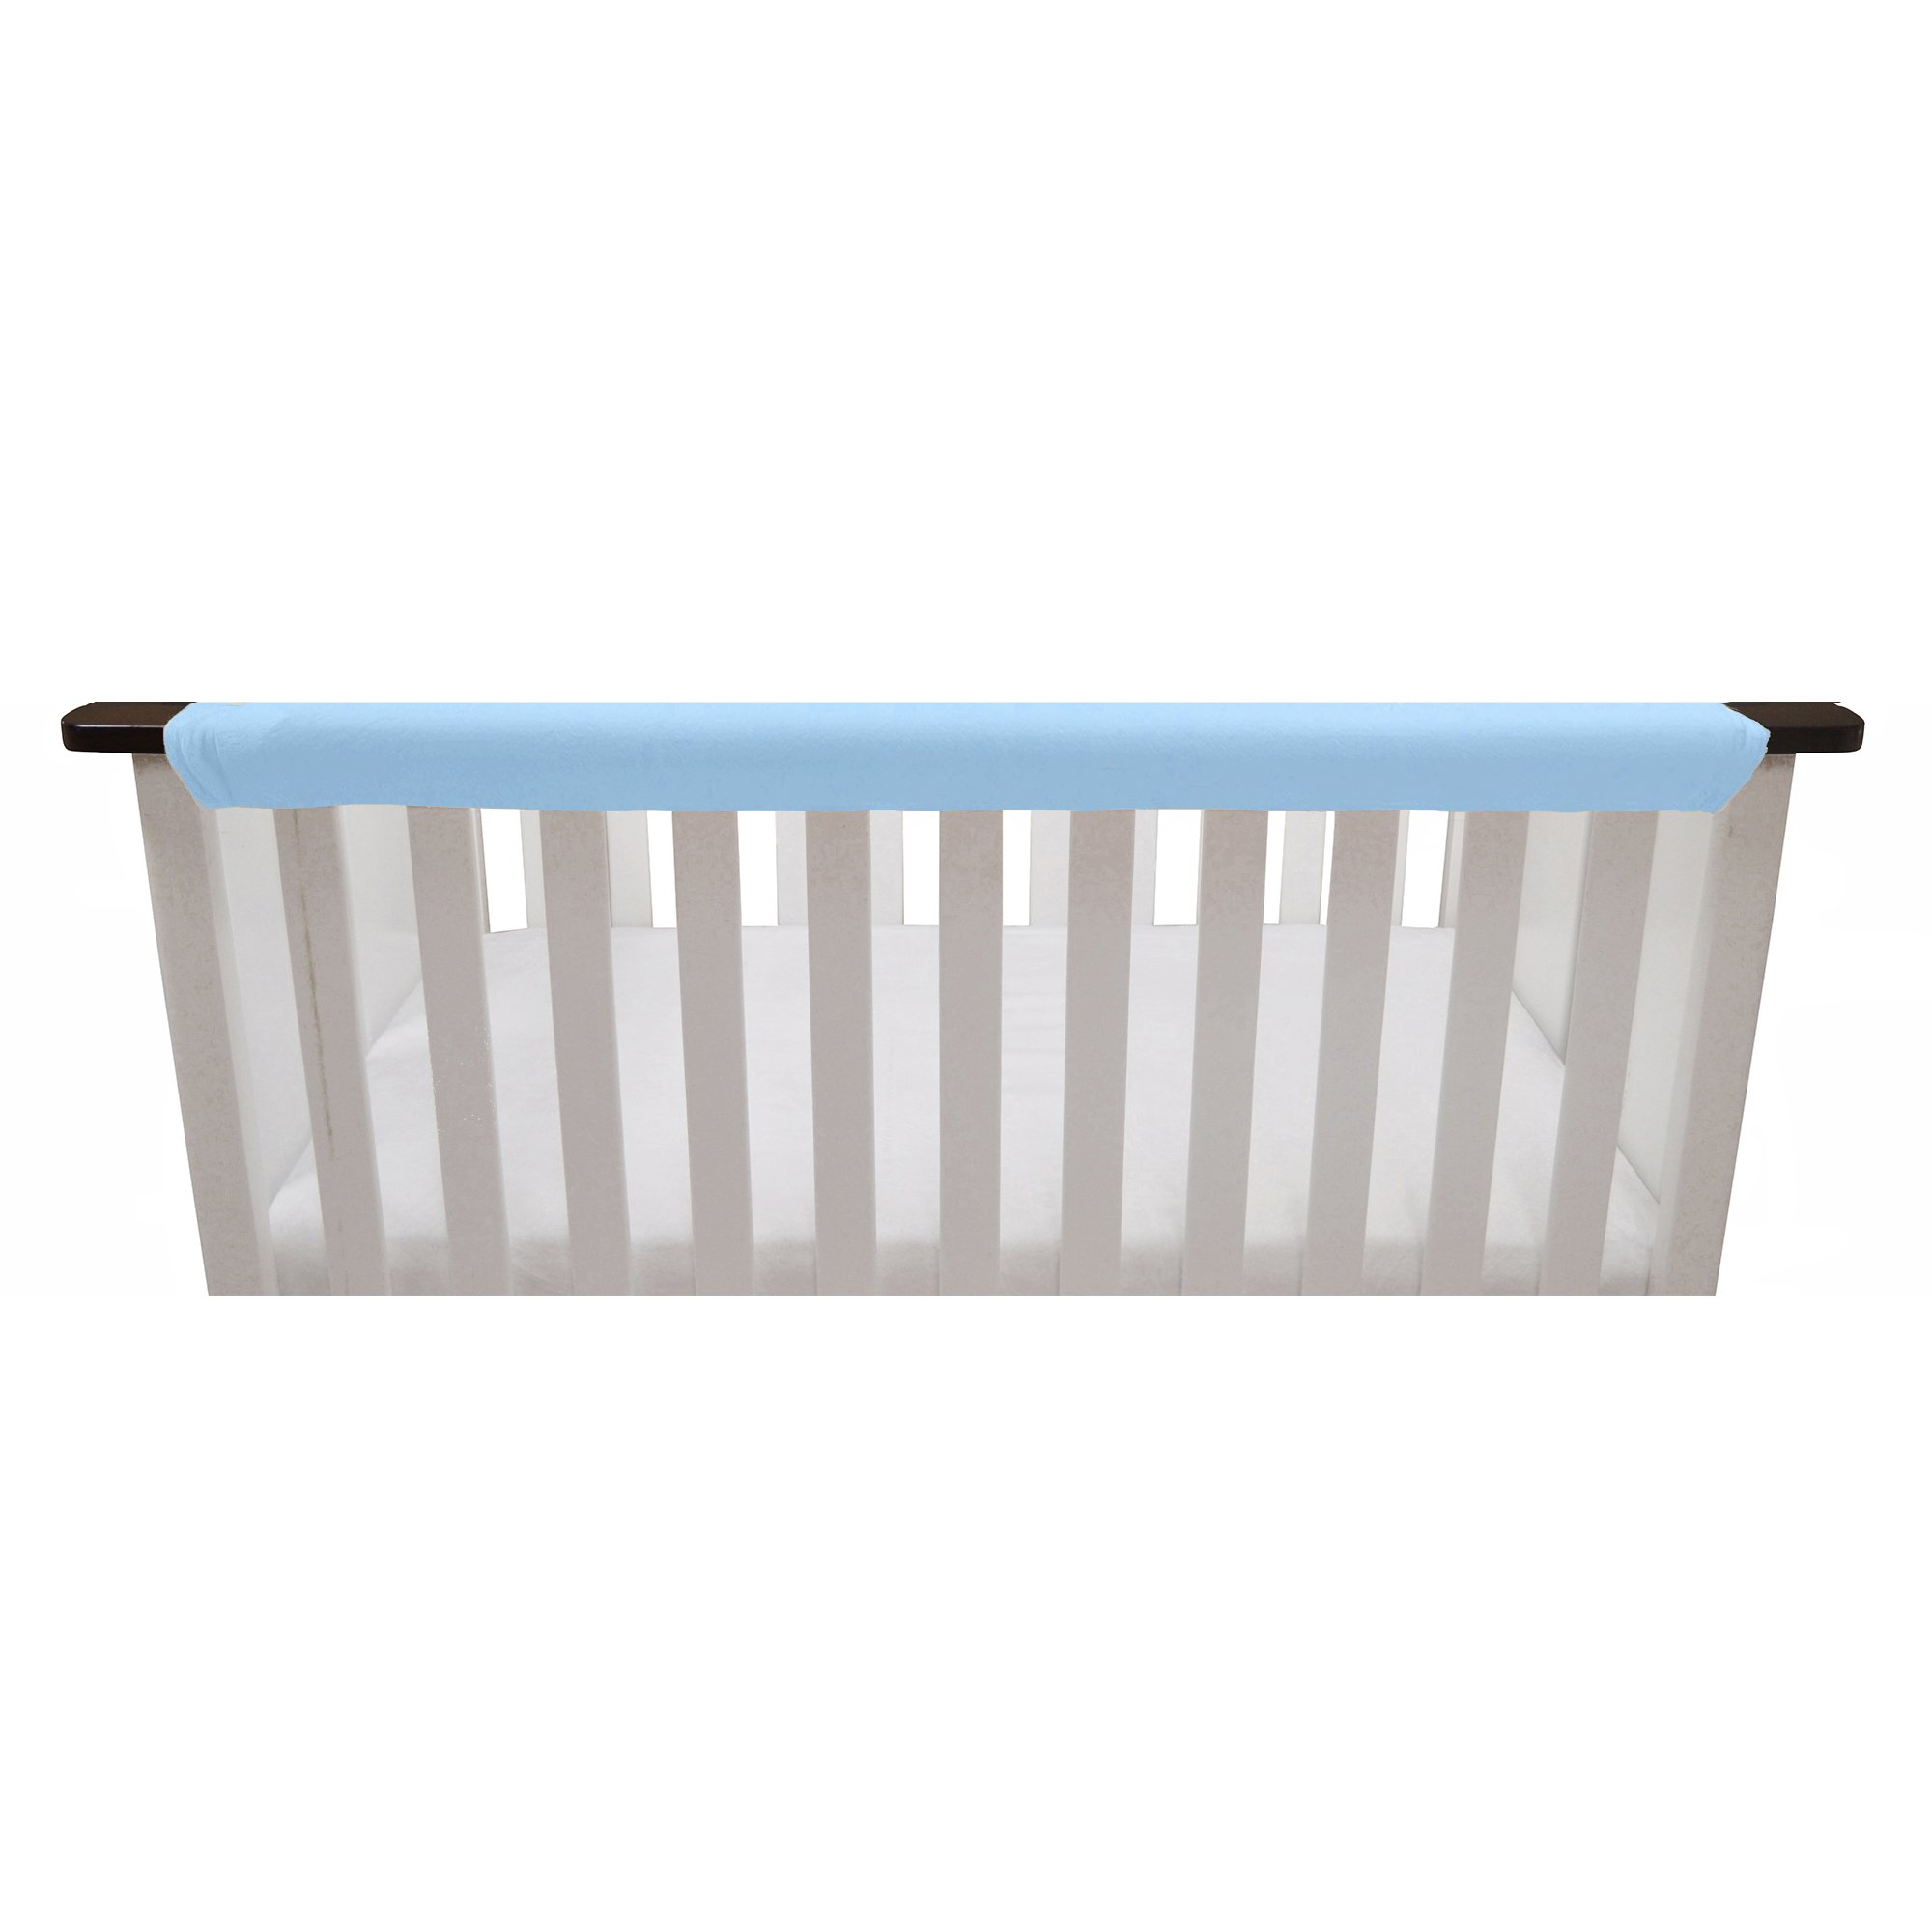 Go Mama Go Organic Teething Guard Protects Baby and Crib, Blue/White, 52''x 12'' by Go Mama Go